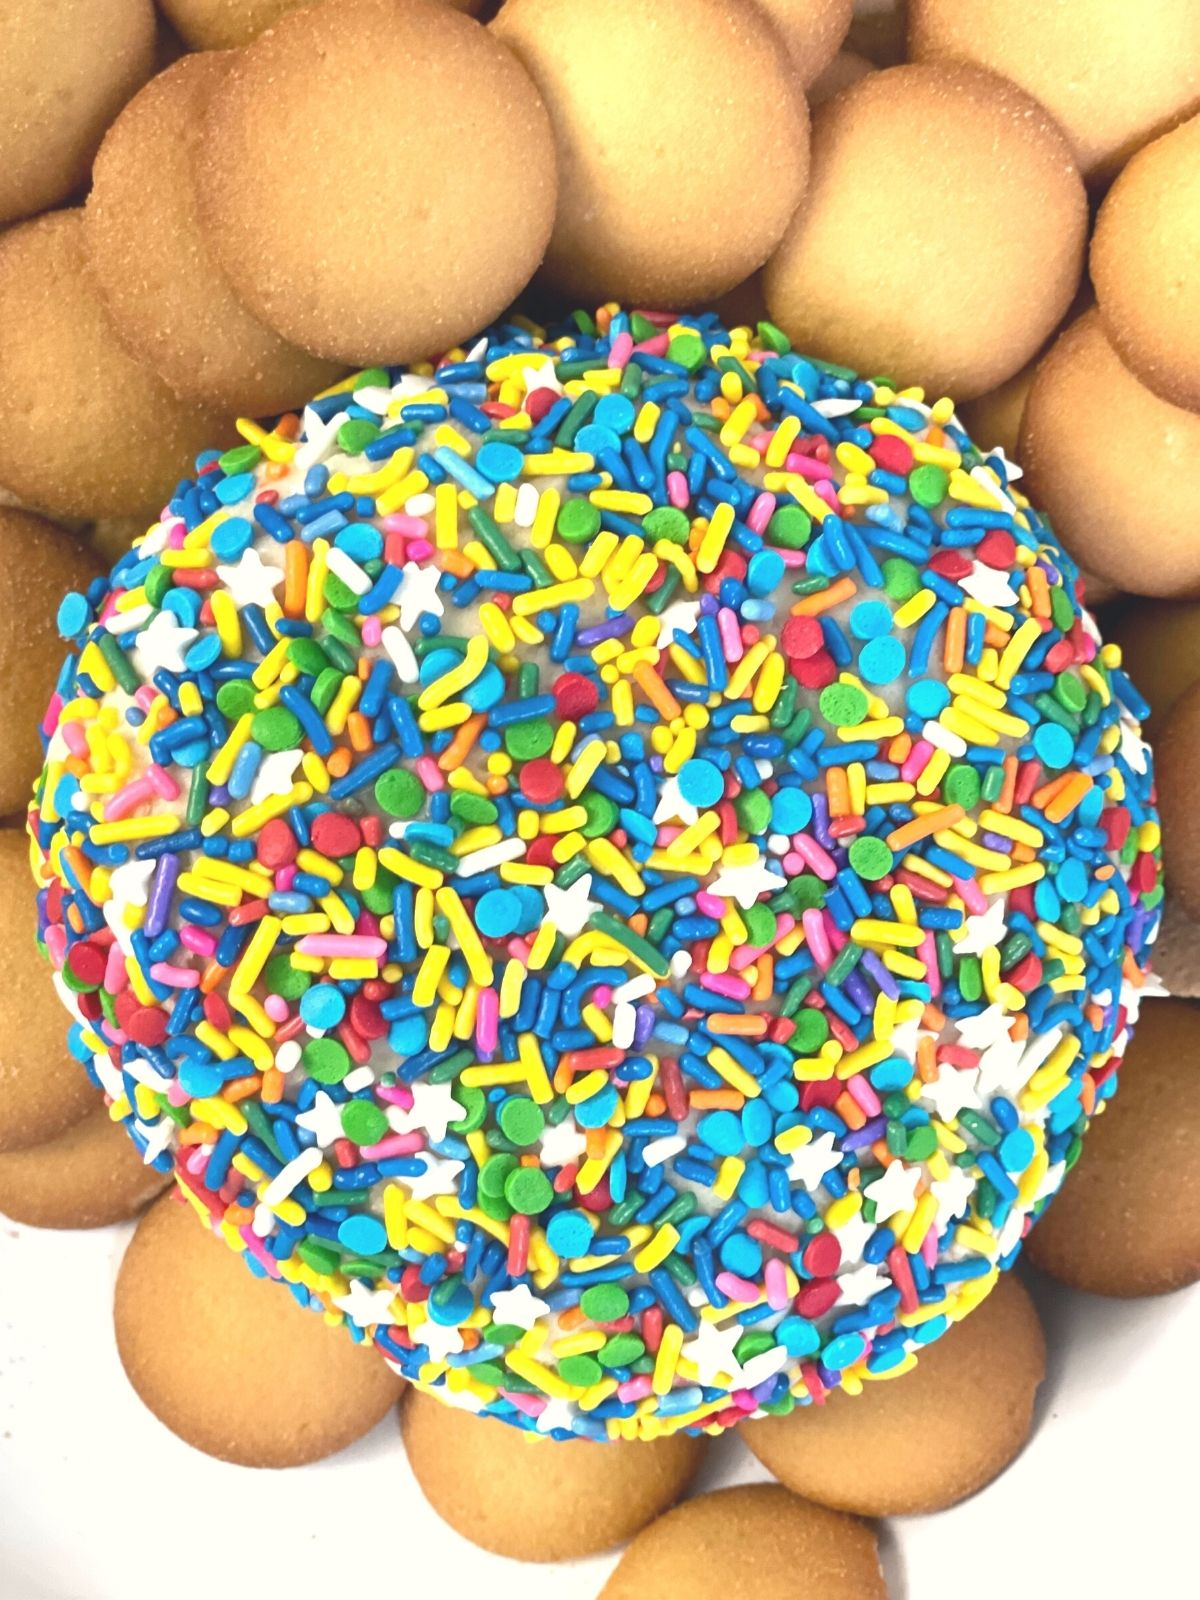 a sprinkle covered cream cheese ball surrounded by vanilla wafers and graham crackers for dipping.